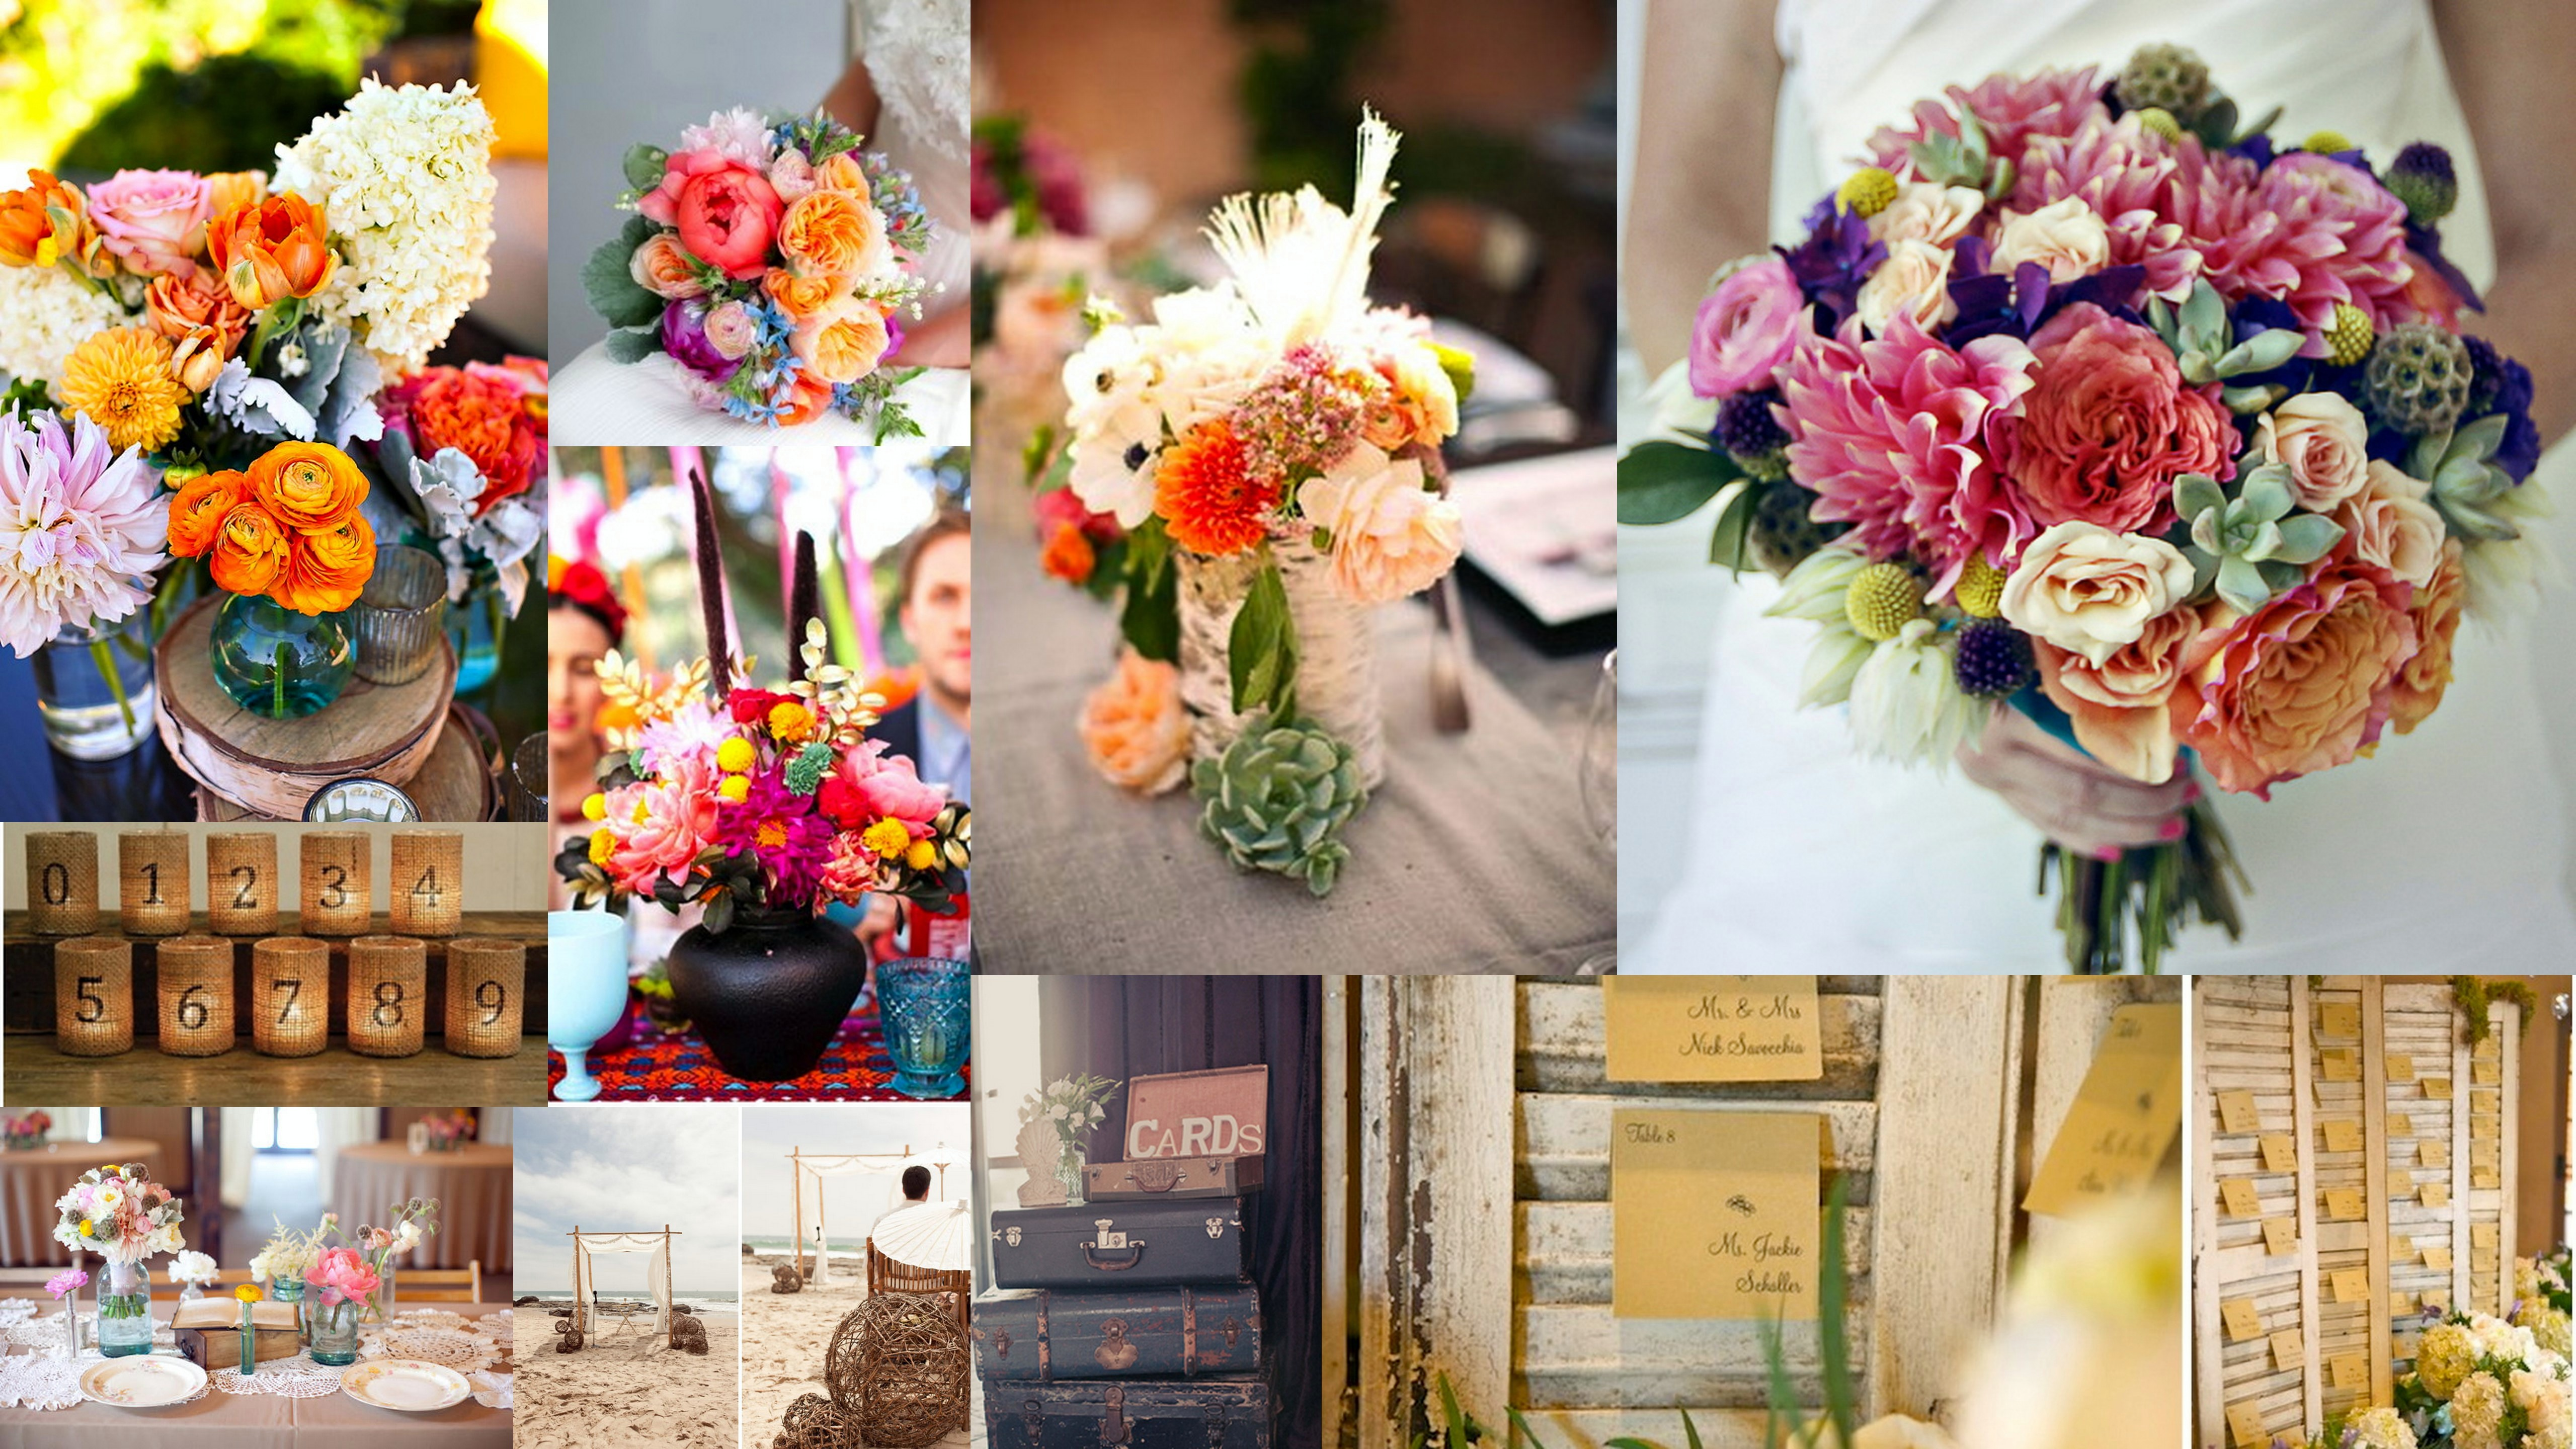 Colorful Vintage Travel Inspired Wedding A Wedding filled with inspiration